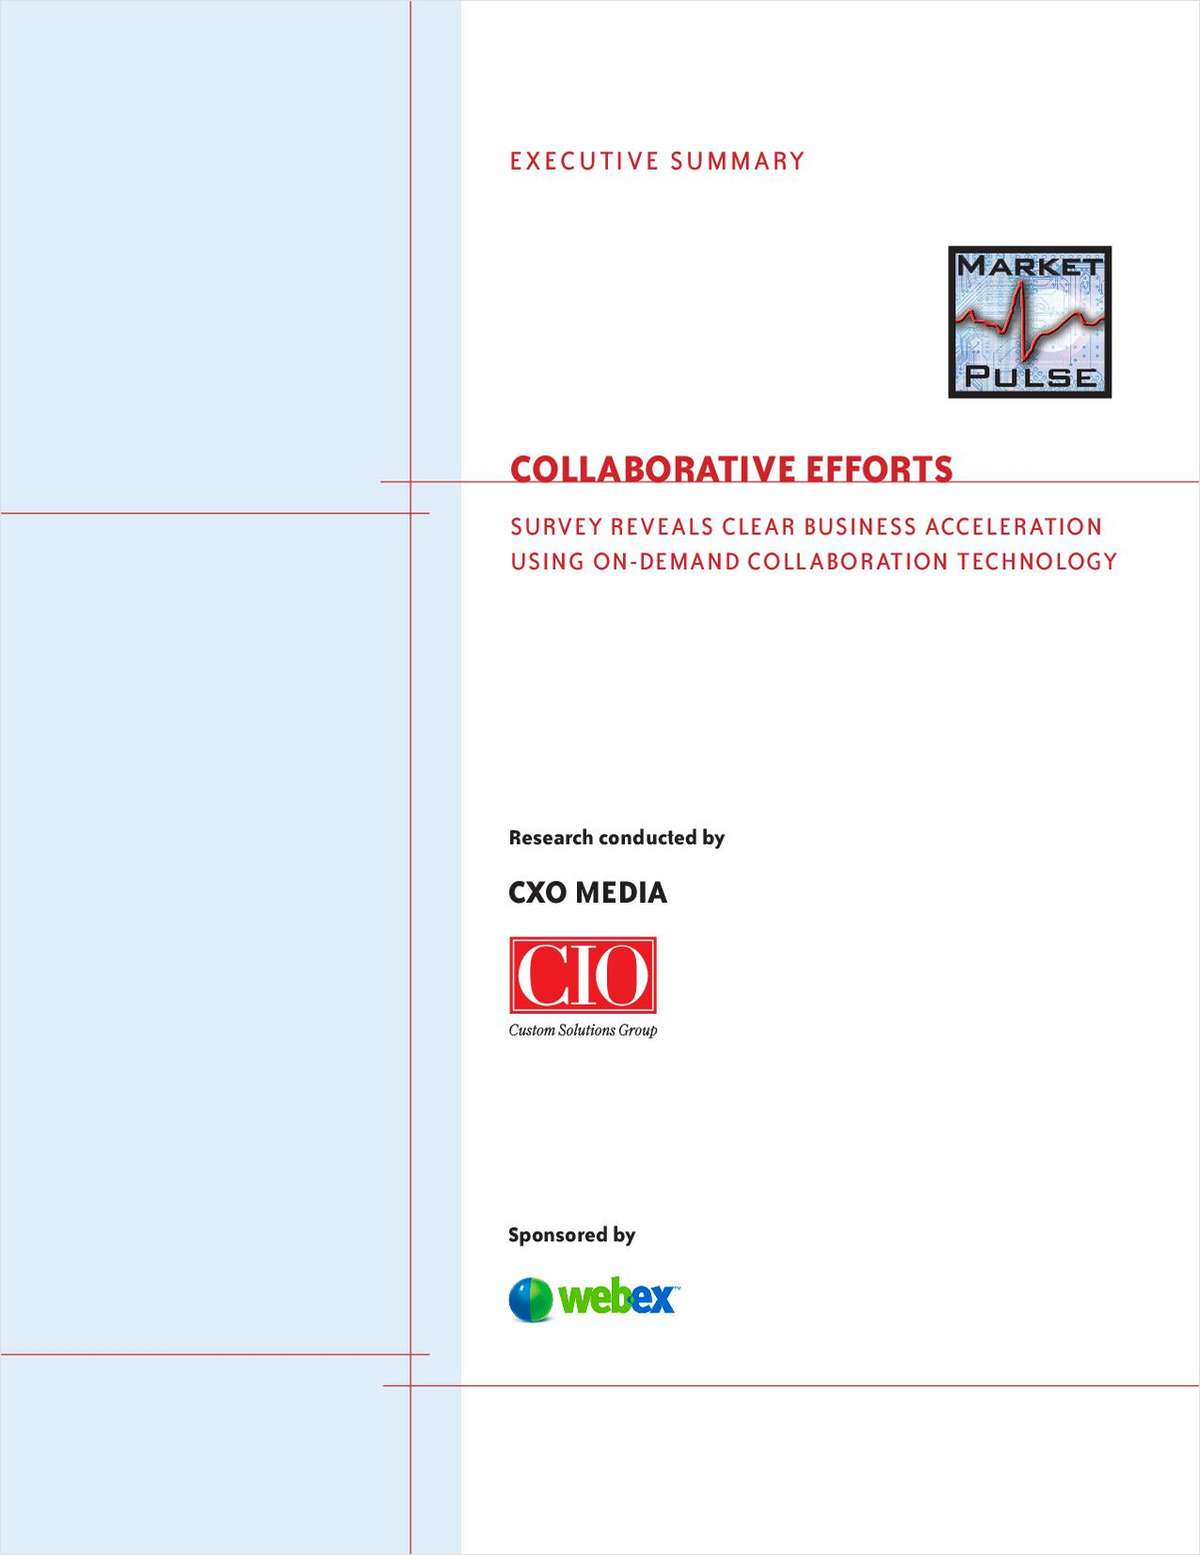 Collaborative Efforts: Survey Reveals Clear Business Acceleration Using On-Demand Collaboration Technology